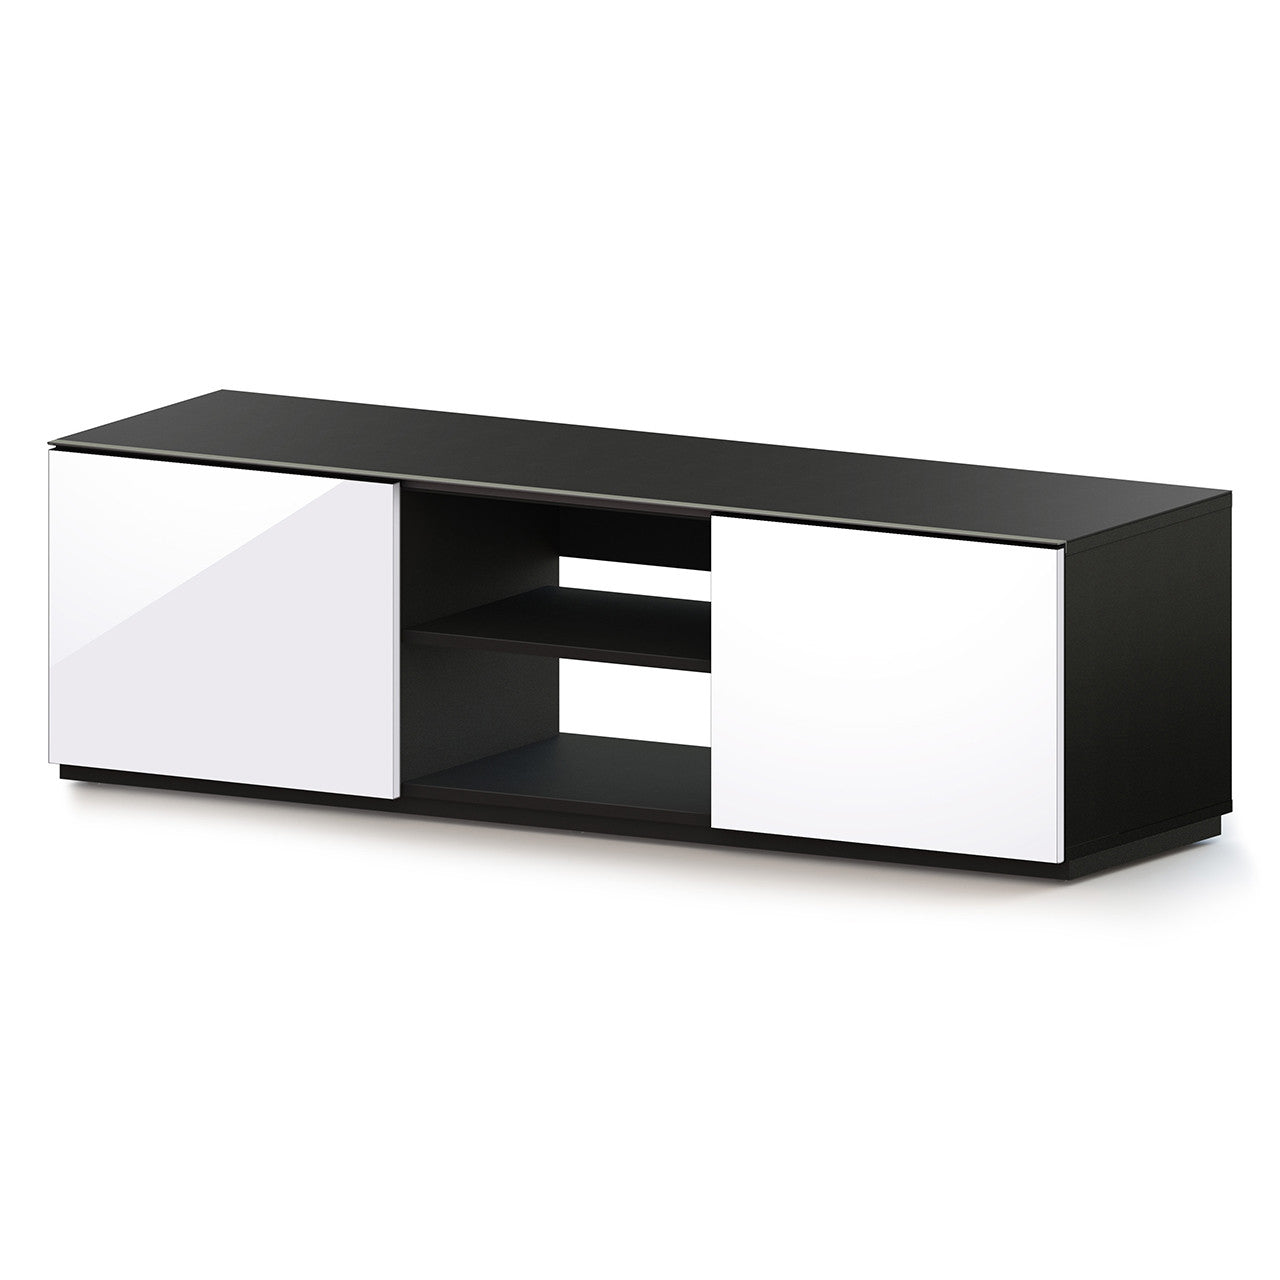 "Sonorous TRD-150 Modern Wood TV Stand For Sizes up to 65"" - White"